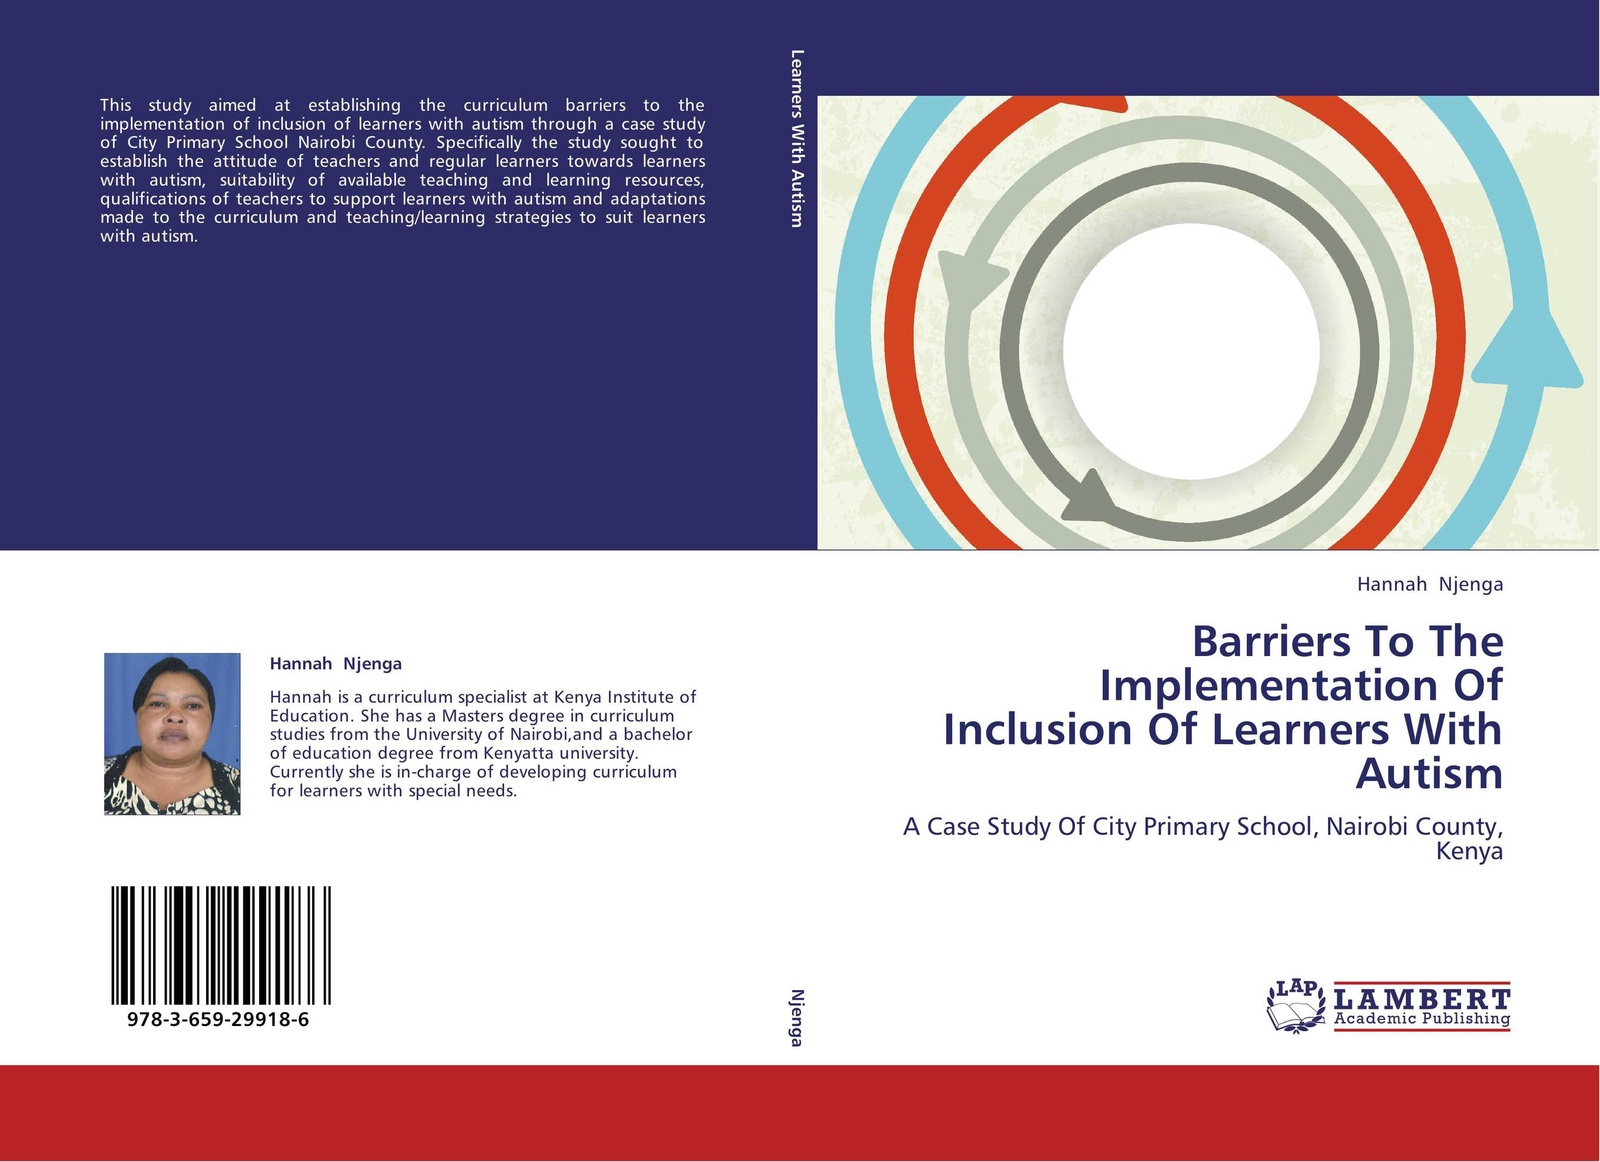 Hannah Njenga Barriers To The Implementation Of Inclusion Of Learners With Autism